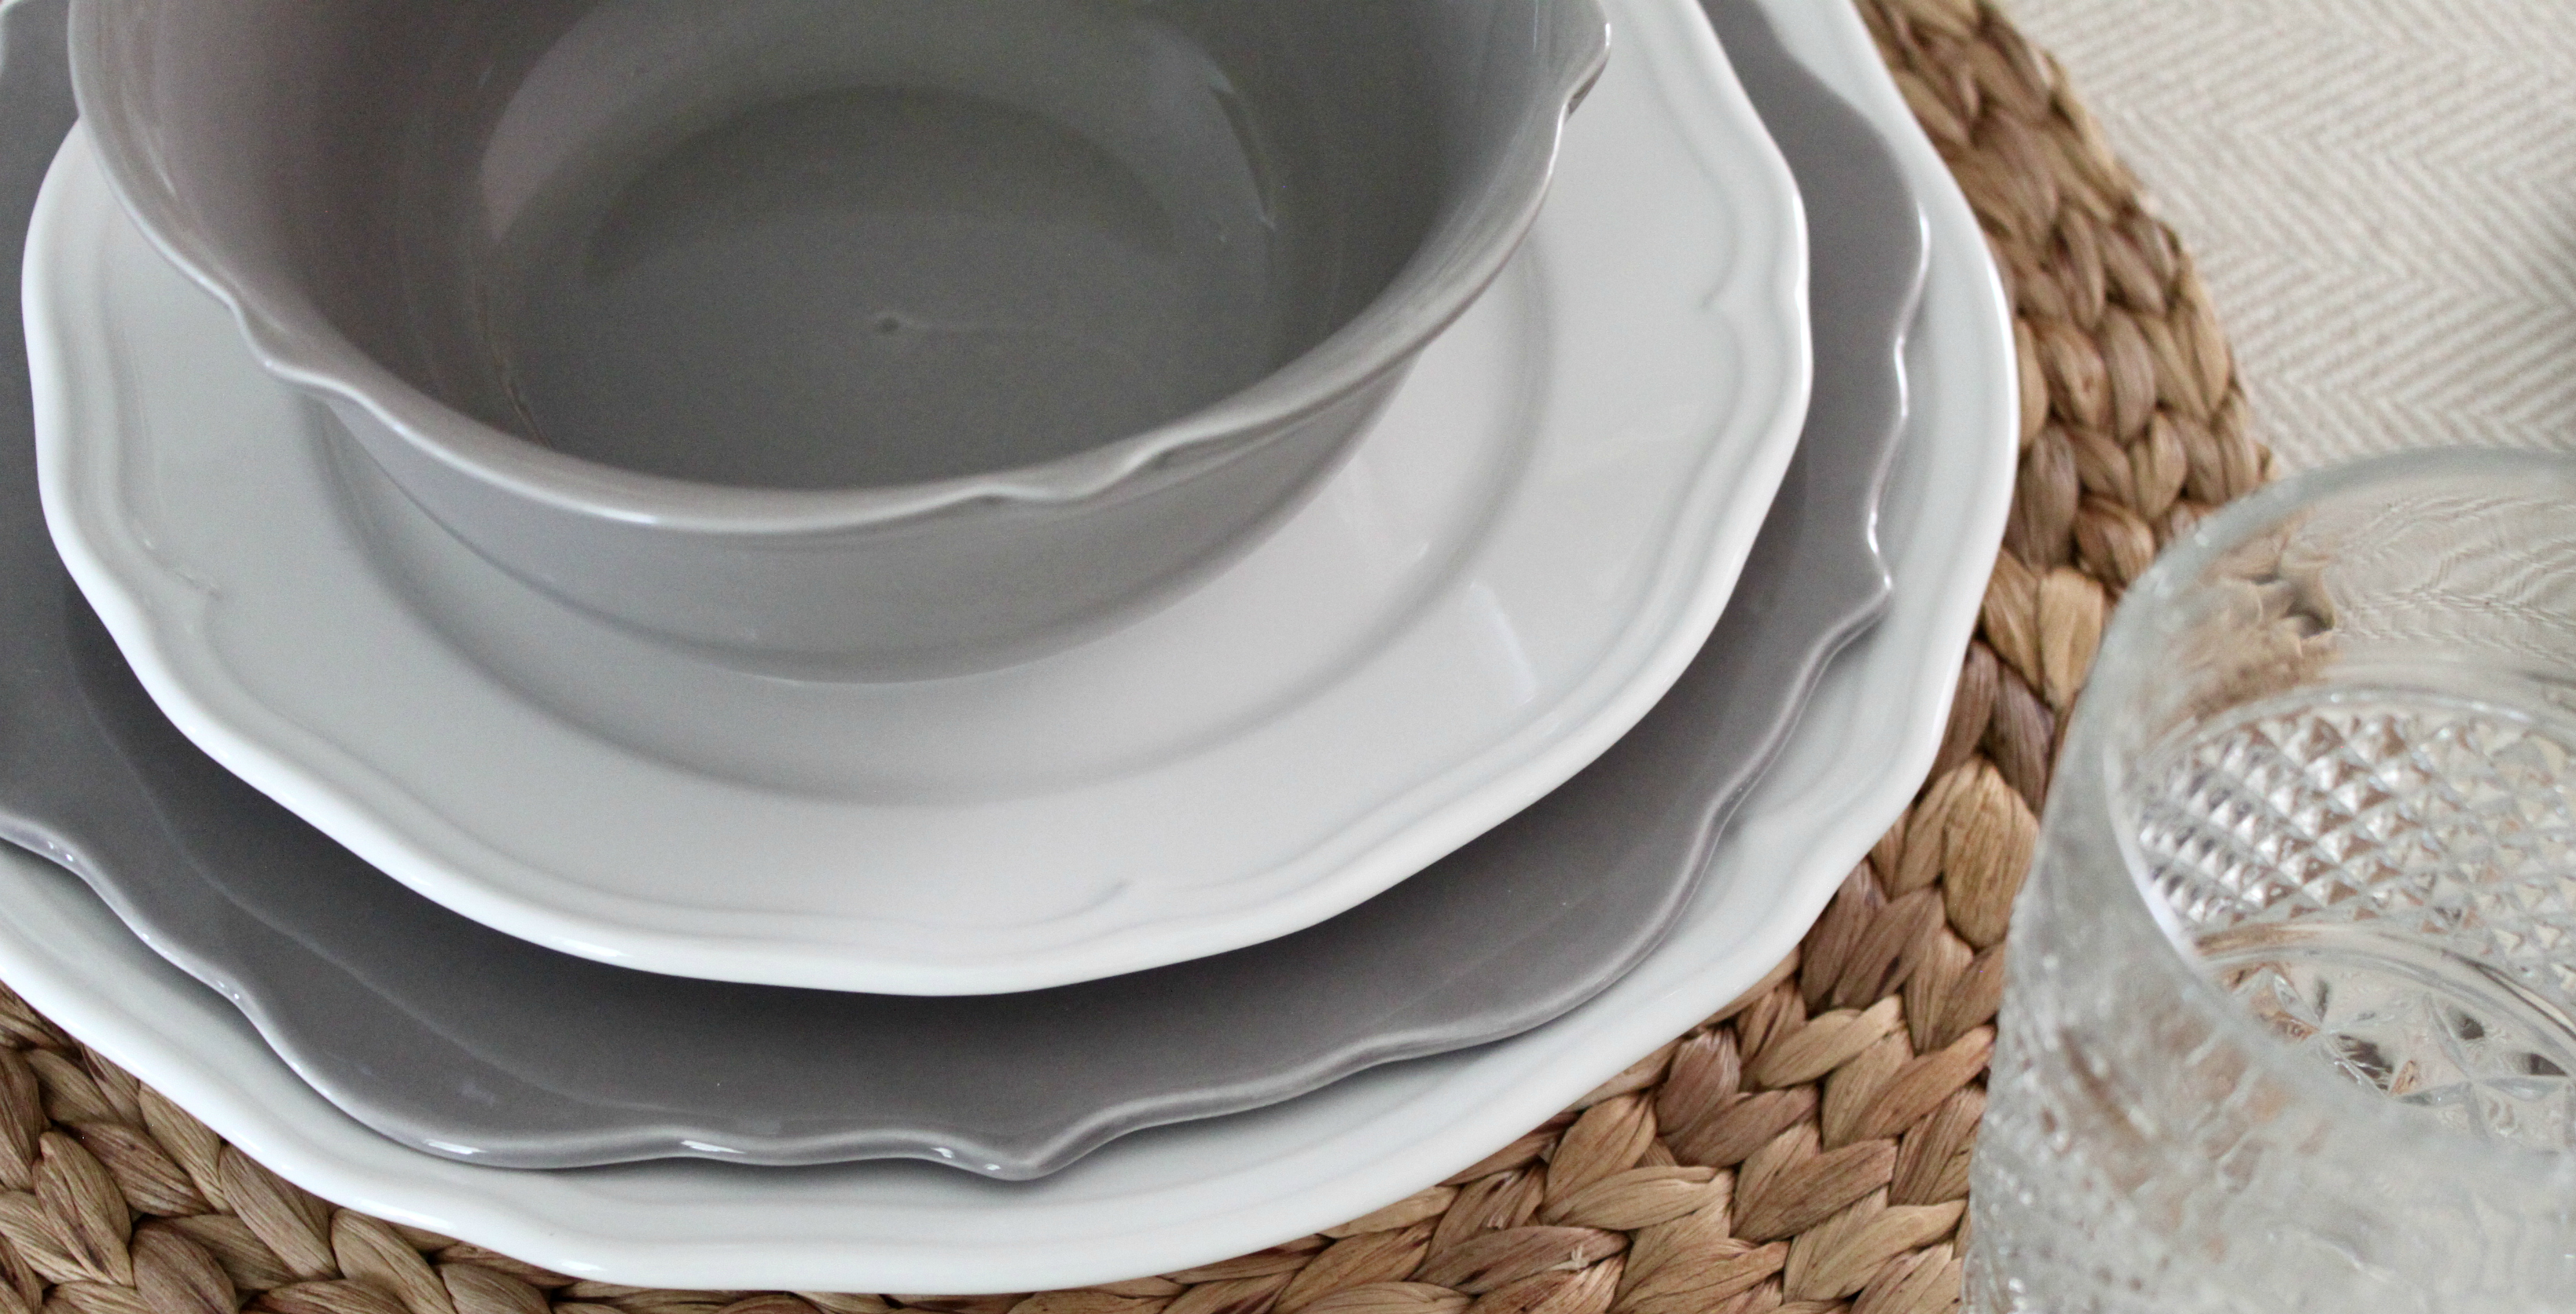 ikea-dishes-placemat-target & How I Decorate with IKEA Decor | An Inspired Nest